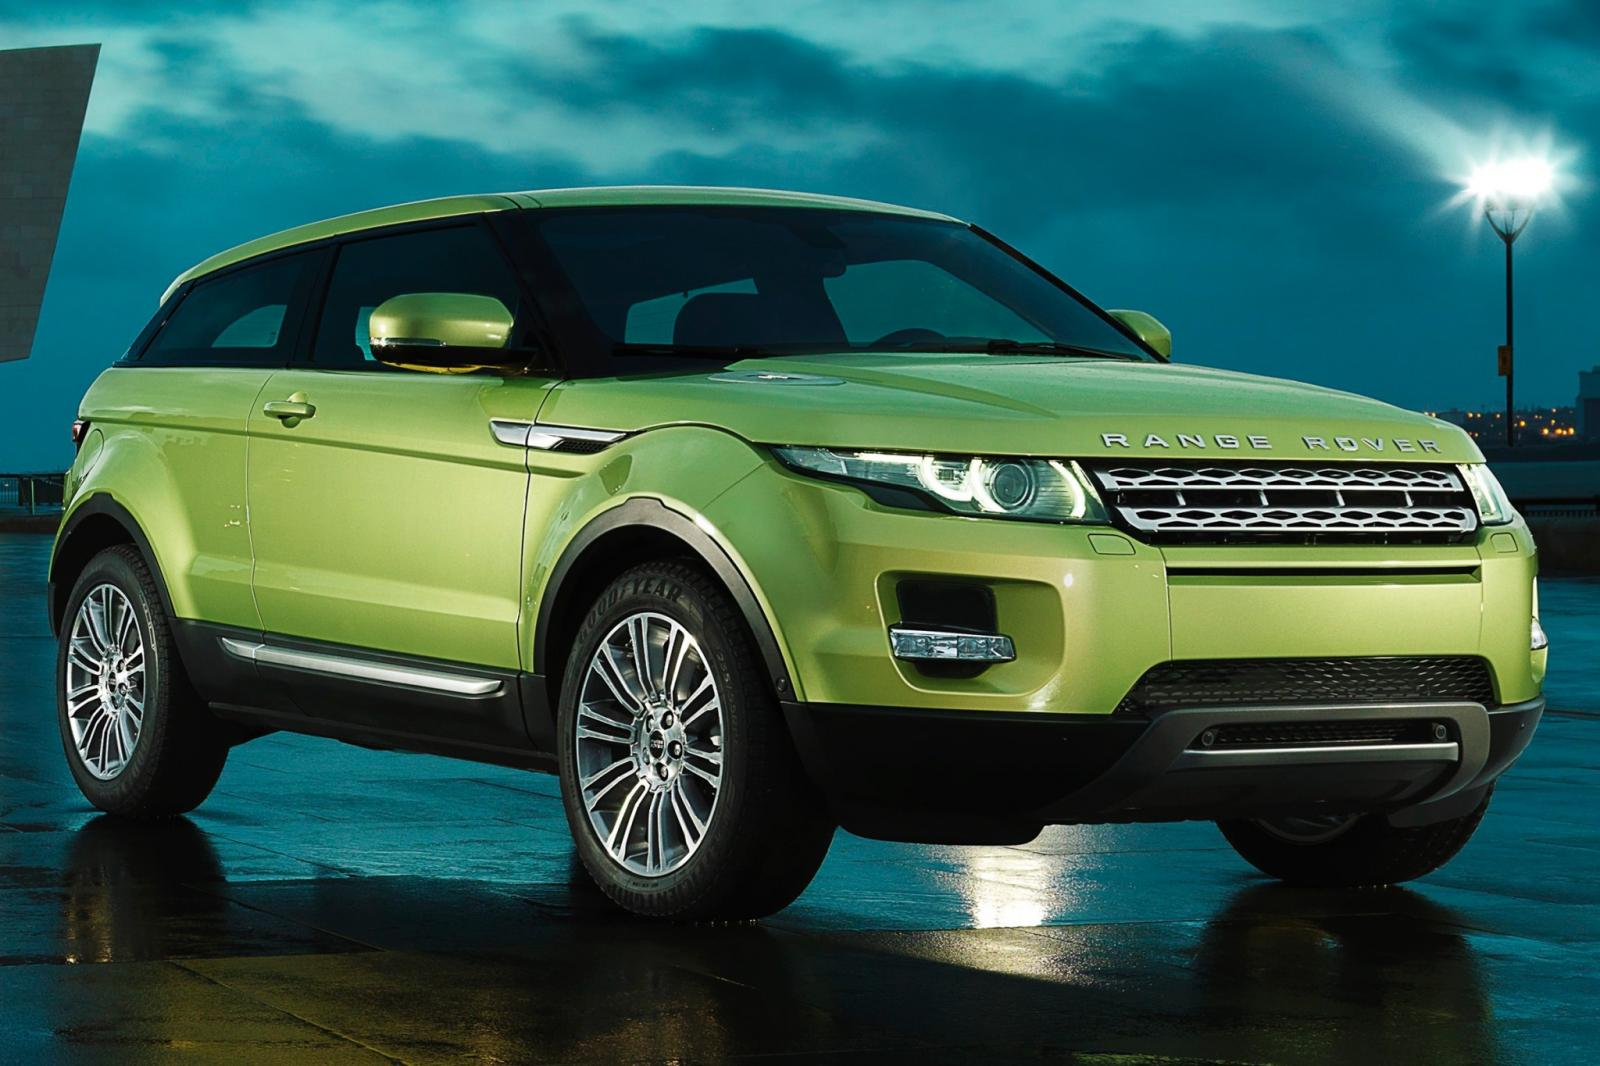 2013 land rover range rover evoque information and photos zombiedrive. Black Bedroom Furniture Sets. Home Design Ideas